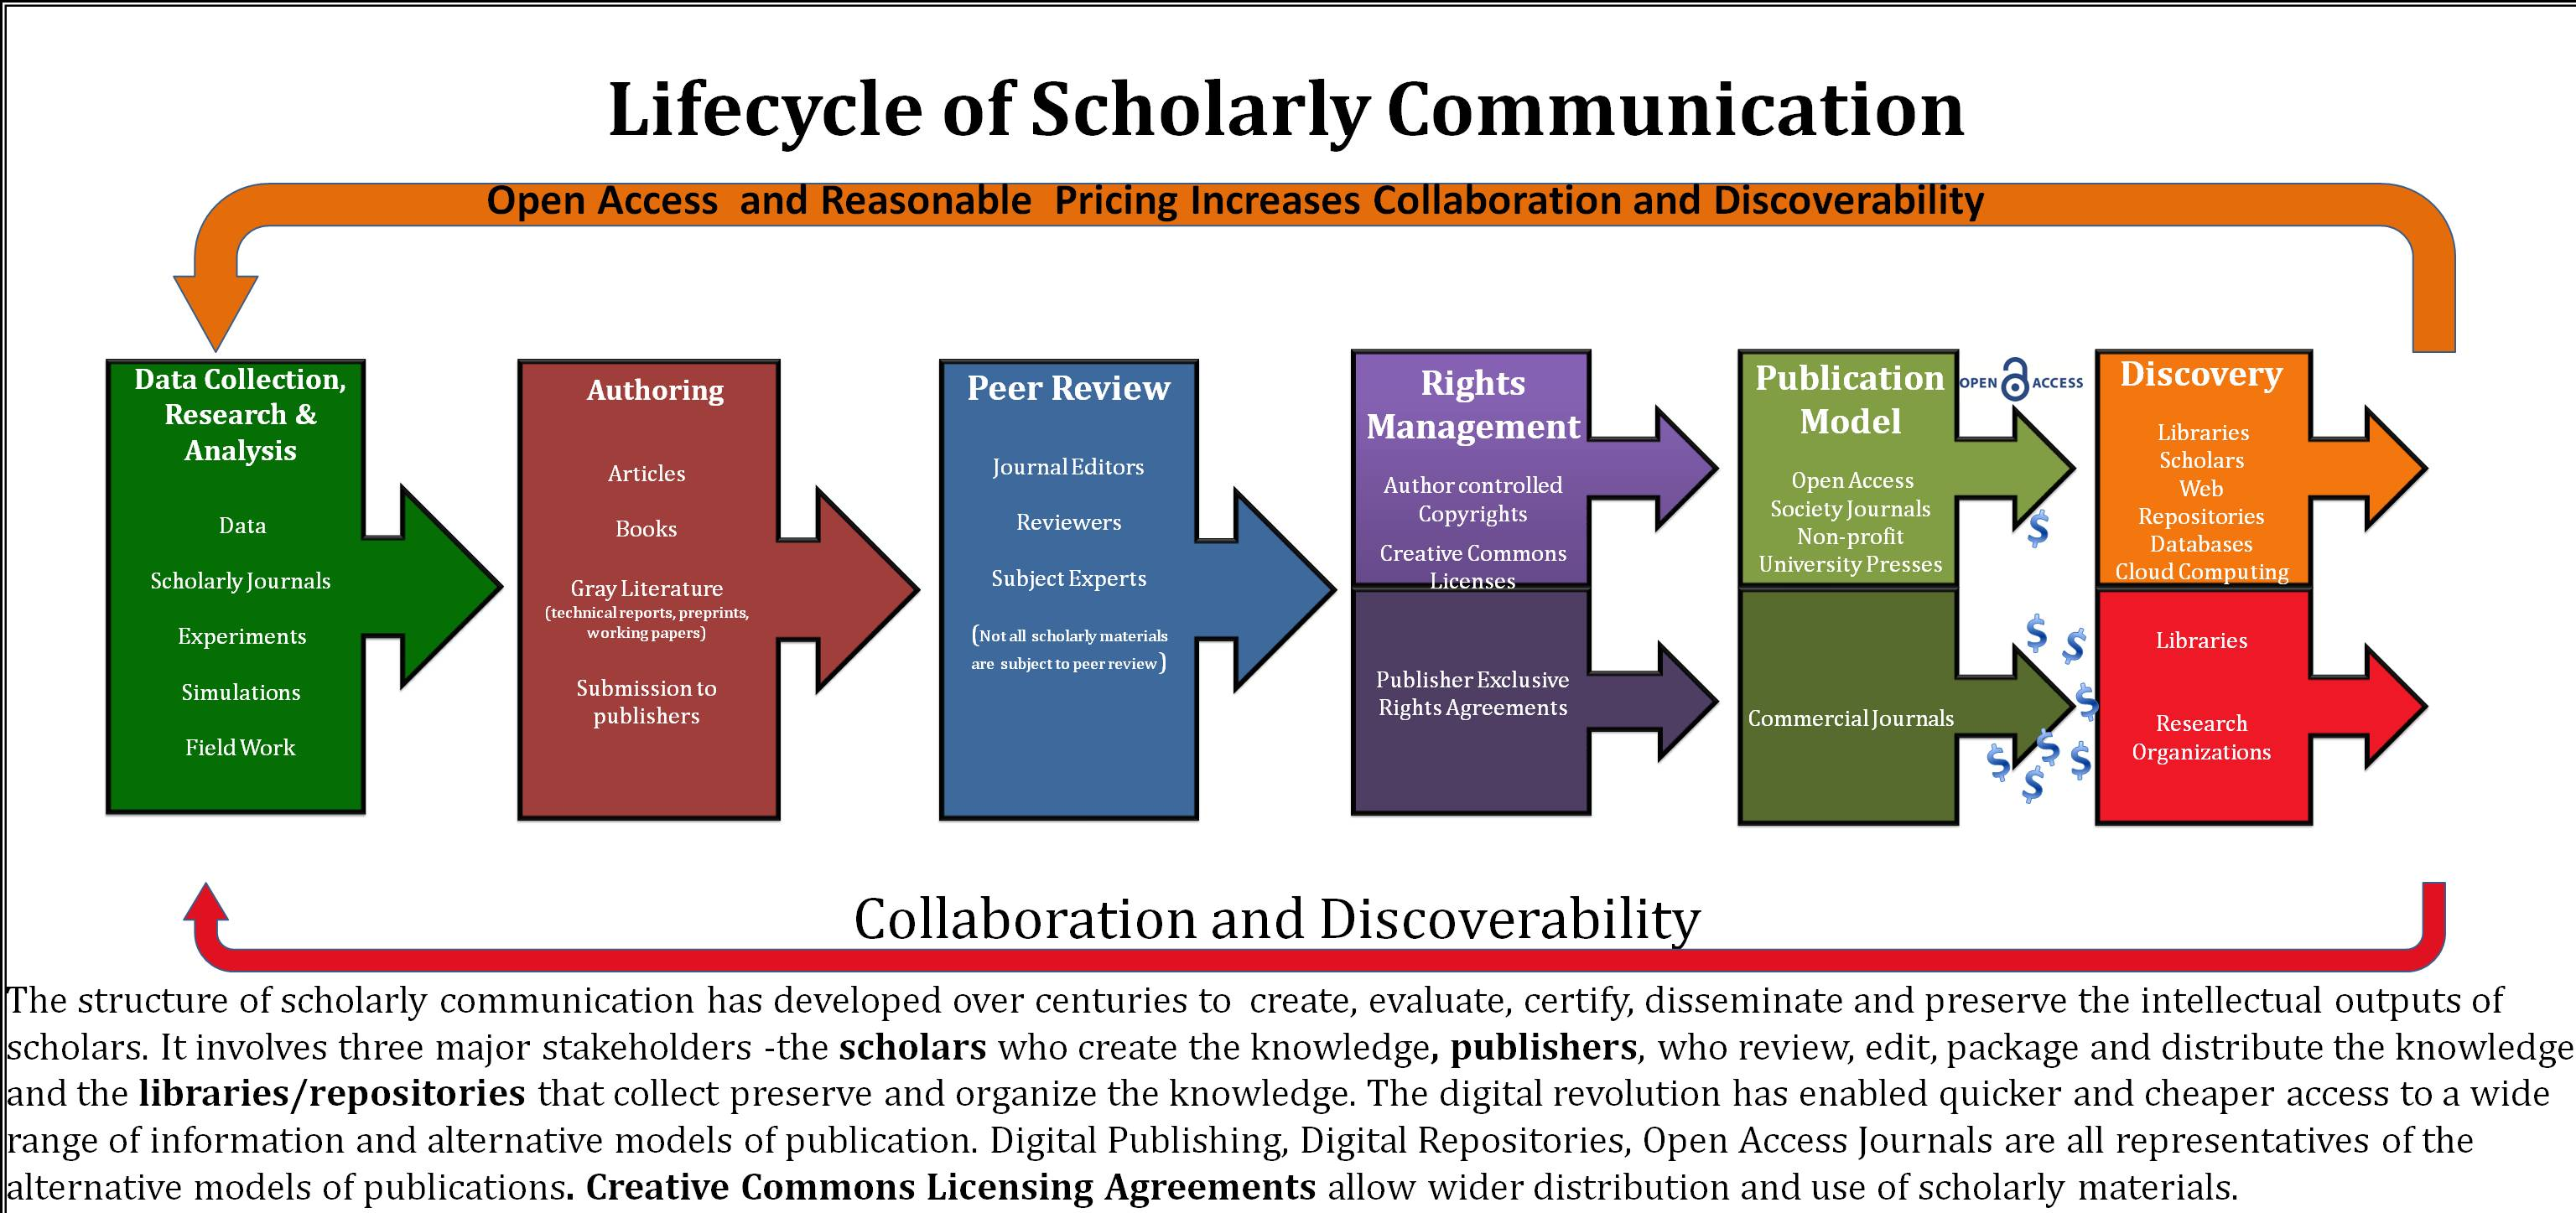 A graphic from the exhibit shows the life cycle of scholarly publishing.